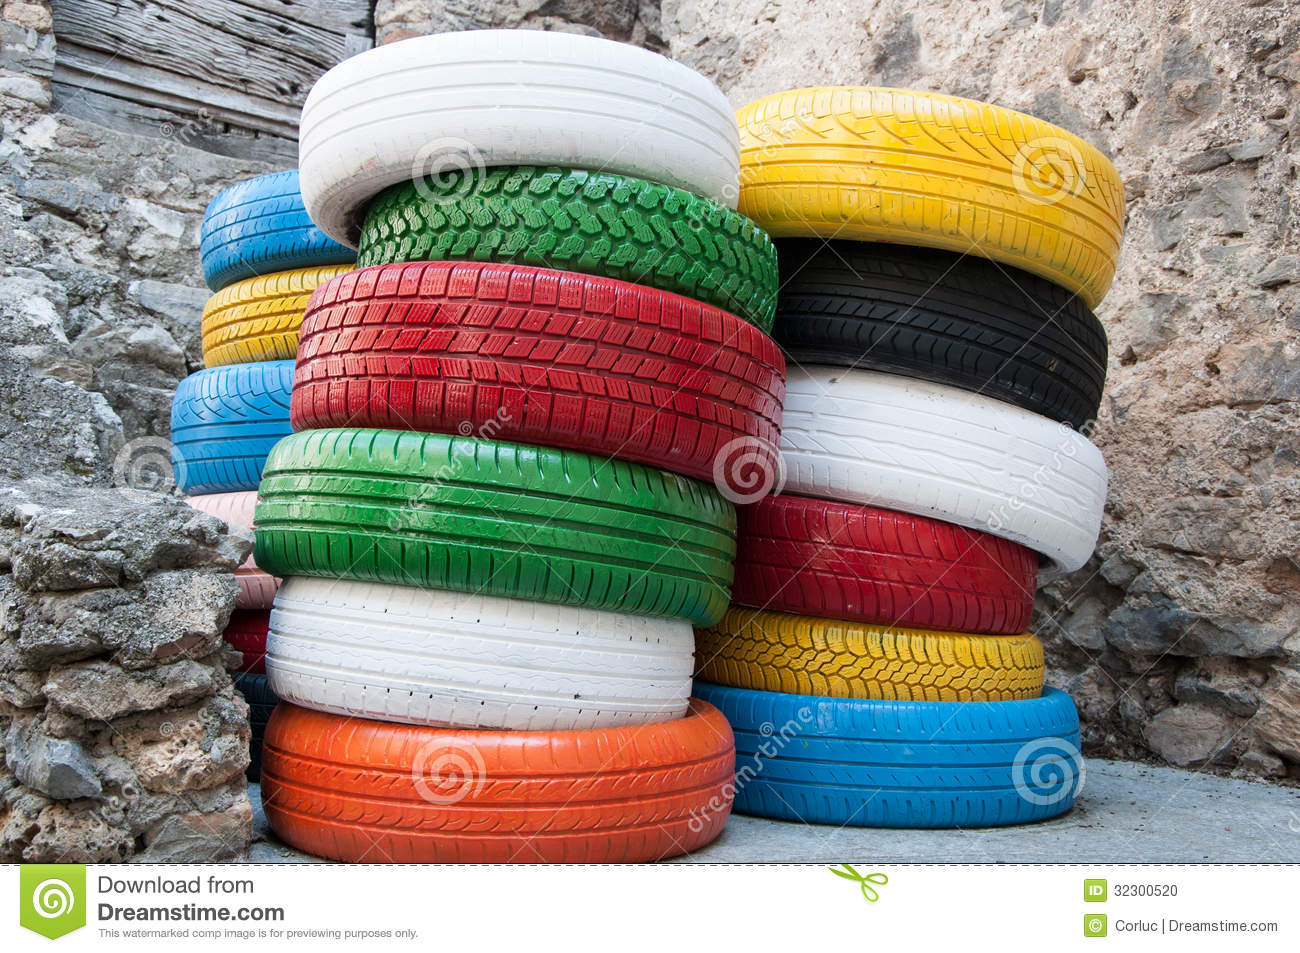 colored-tyres-some-old-standing-outside-workshop-32300520.jpg